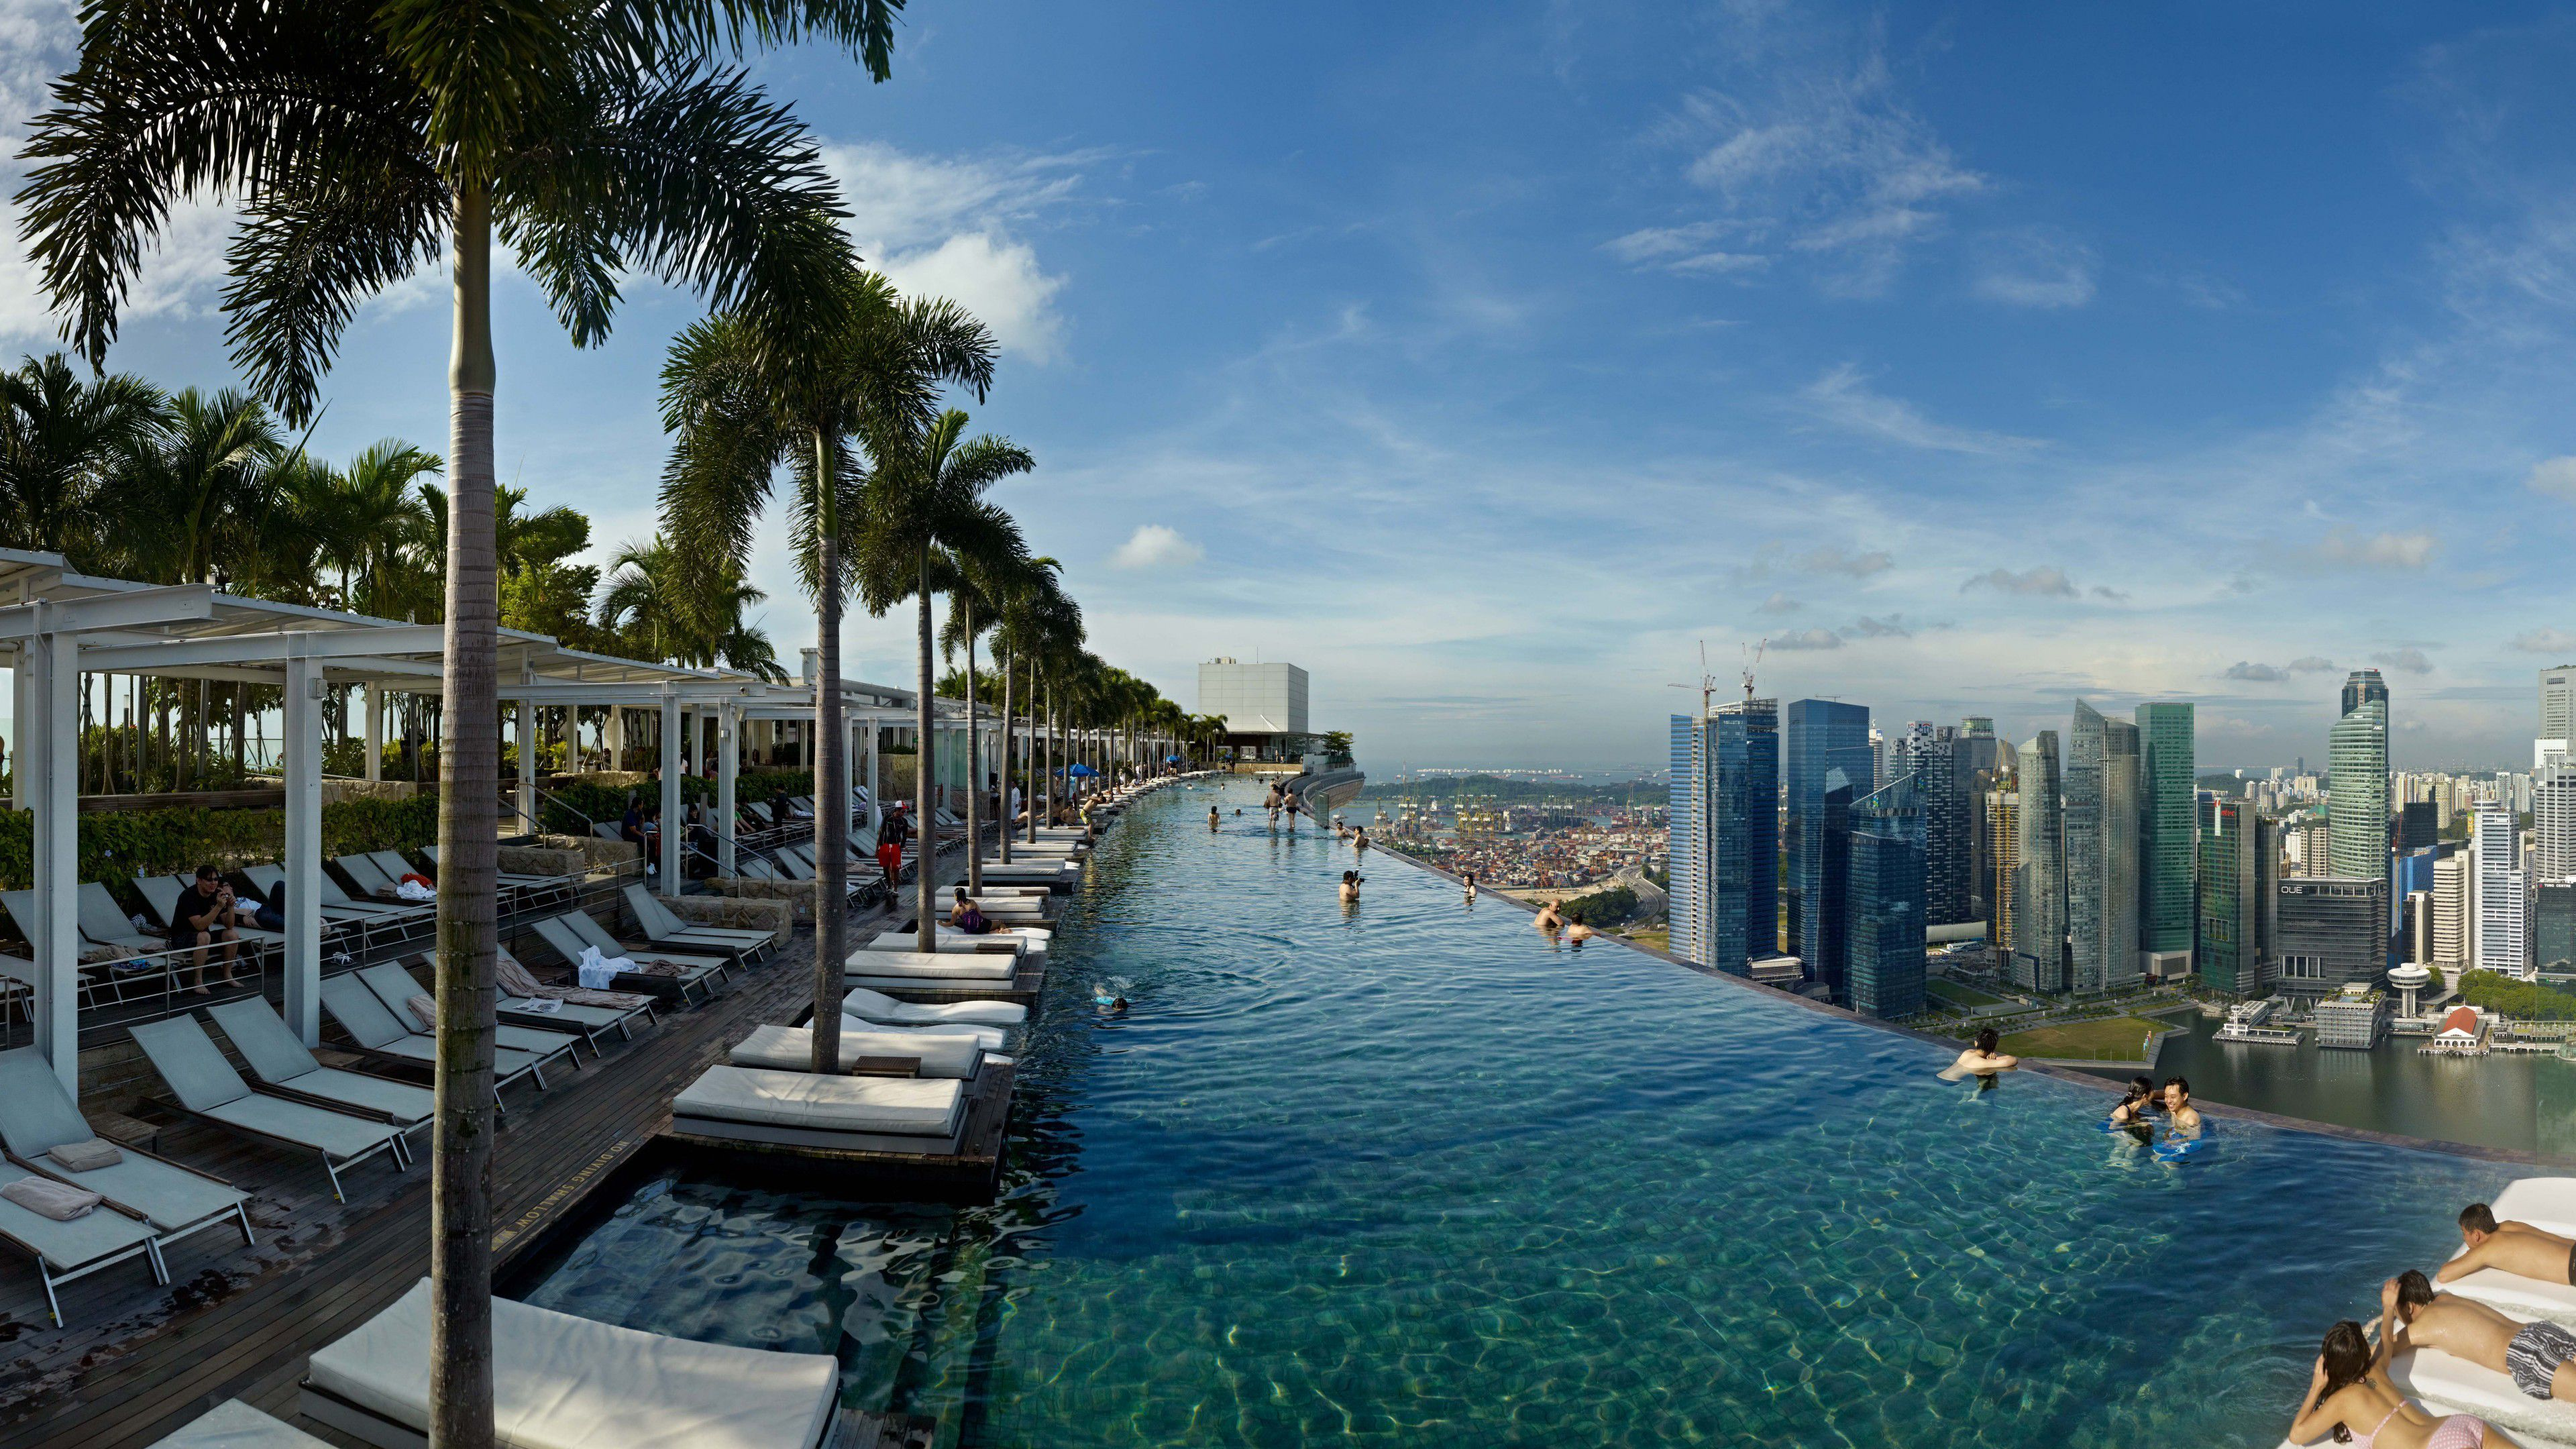 Wallpaper Marina Bay Sands Infinity Pool Pool Hotel Travel Sands Hotel Sands Singapore Stay In Singapore